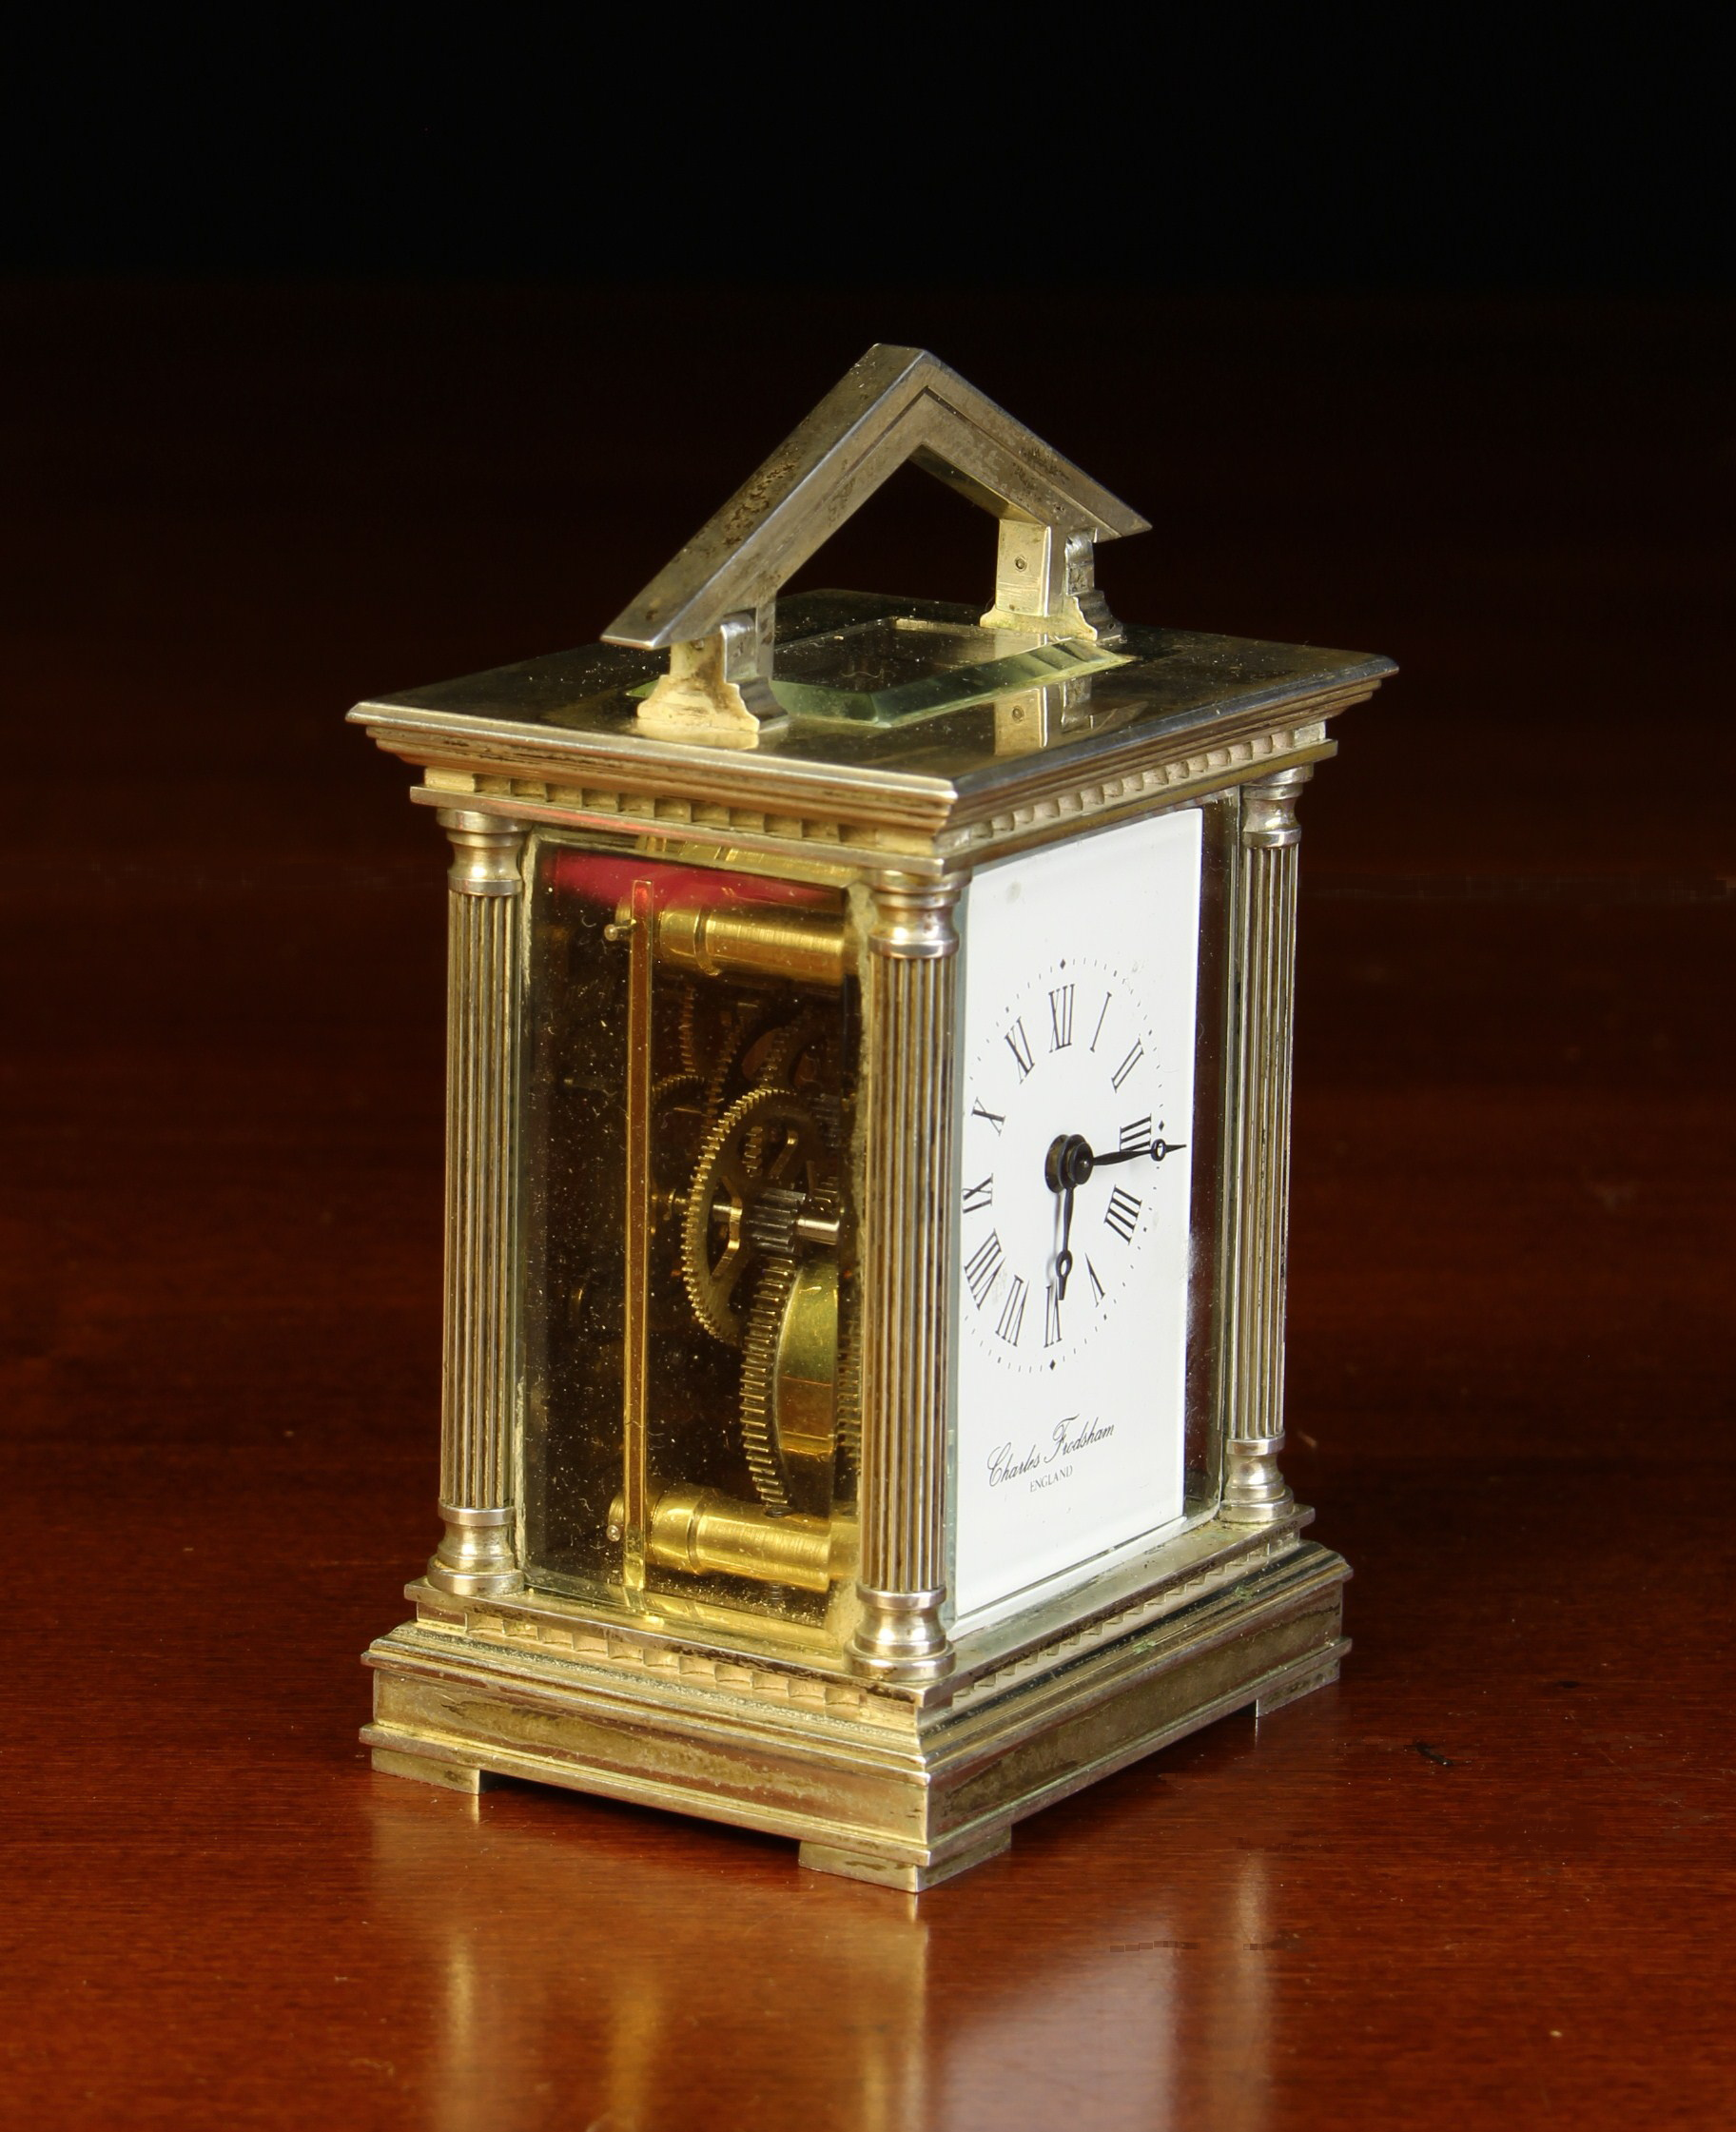 A Miniature Limited Edition Silver Carriage Clock by Chas. - Image 2 of 4